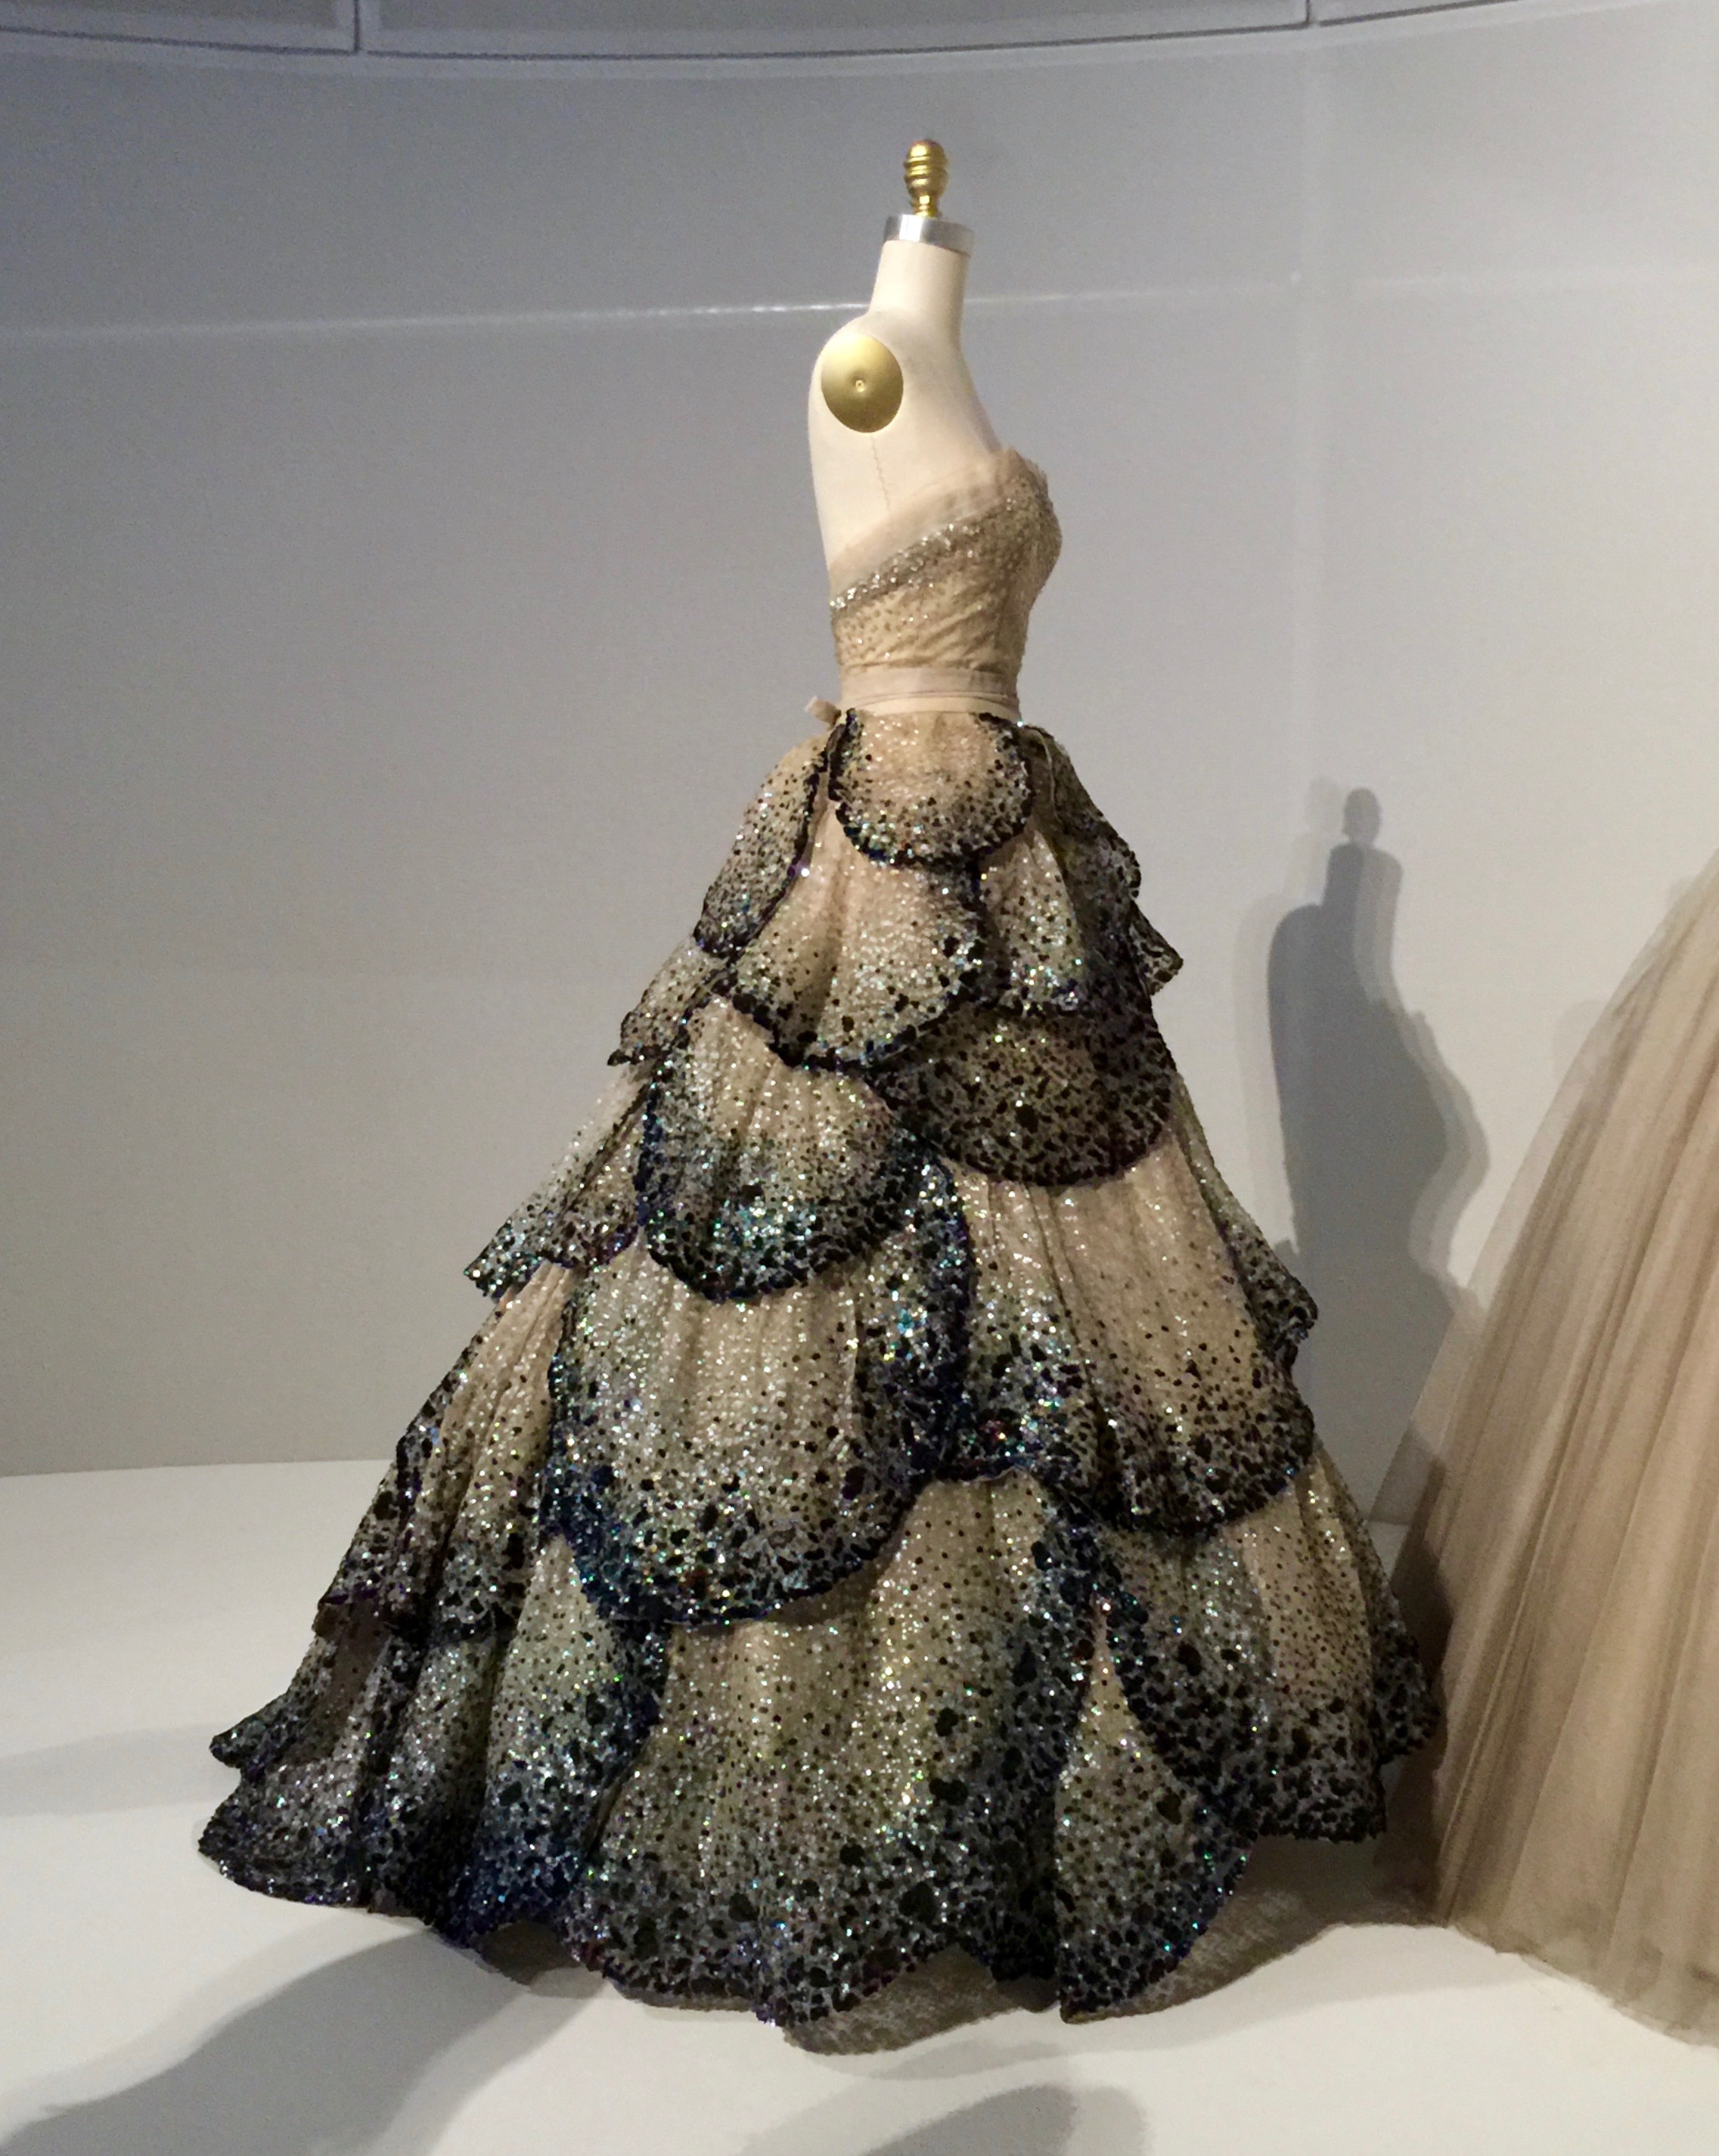 "HOUSE OF DIOR, Christian Dior ""JUNON"" DRESS, Autumn/Winter 1949-50, haute couture  Machine-sewn, hand-finished pale green silk faille and taffeta foundation, hand-sewn pale blue silk tulle embroidered with opalescent sequins, hand-appliqué of forty-five hand-cut pale blue silk tulle and horsehair petals, hand-embroidered with opalescent, blue, green, and orange gelatin sequins."